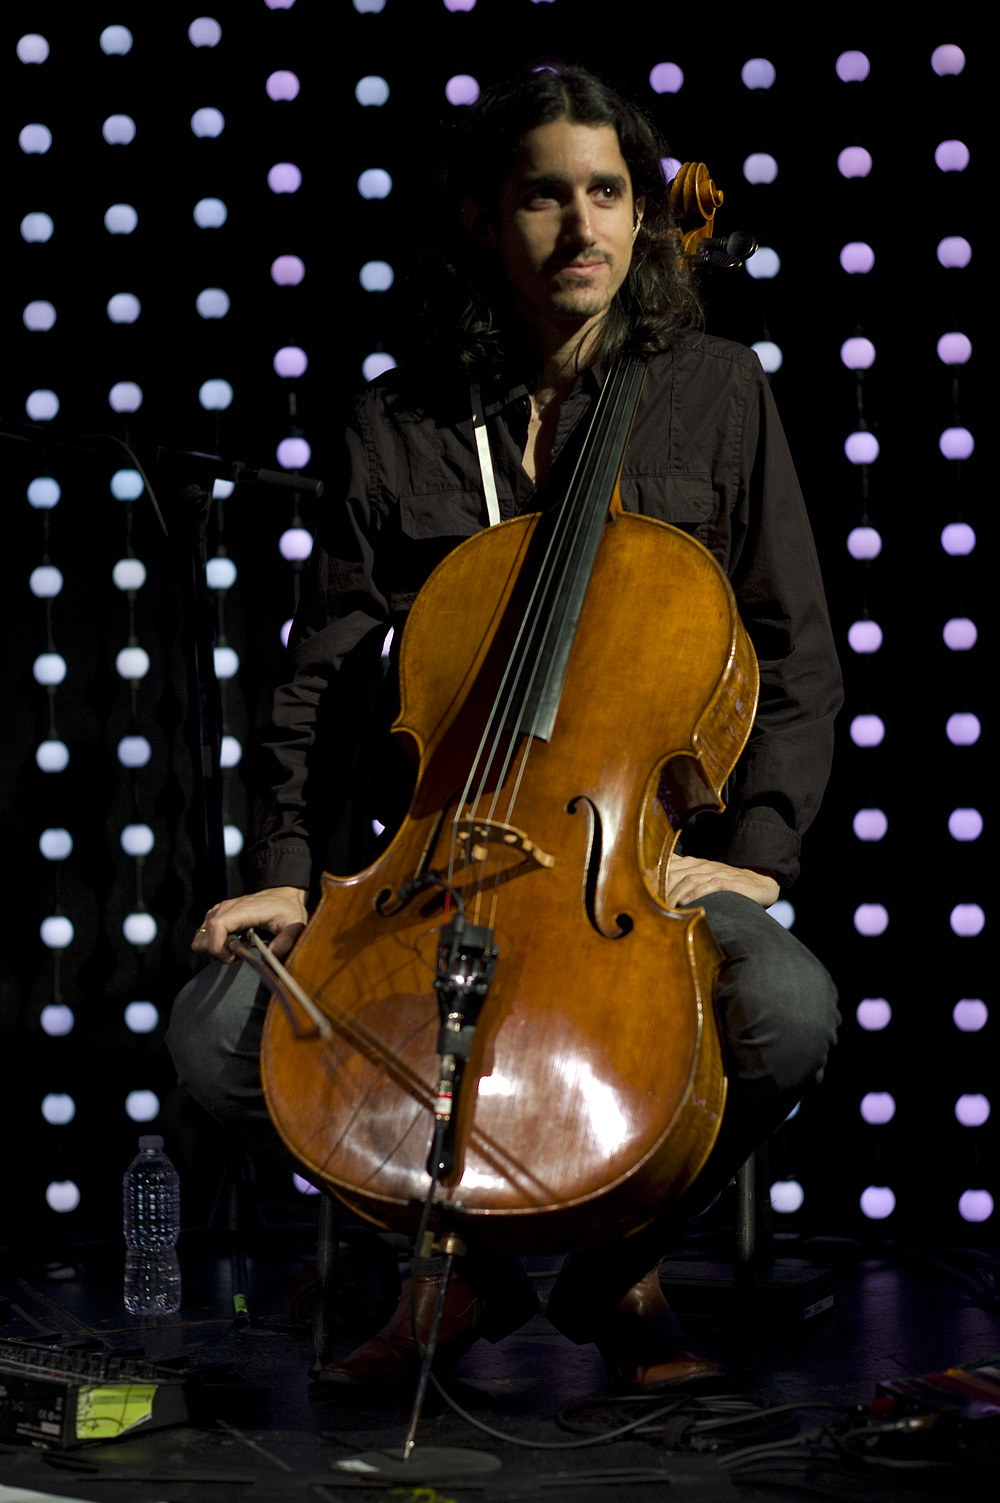 Cellist Yoed Nir also joined Regina Spektor on stage.